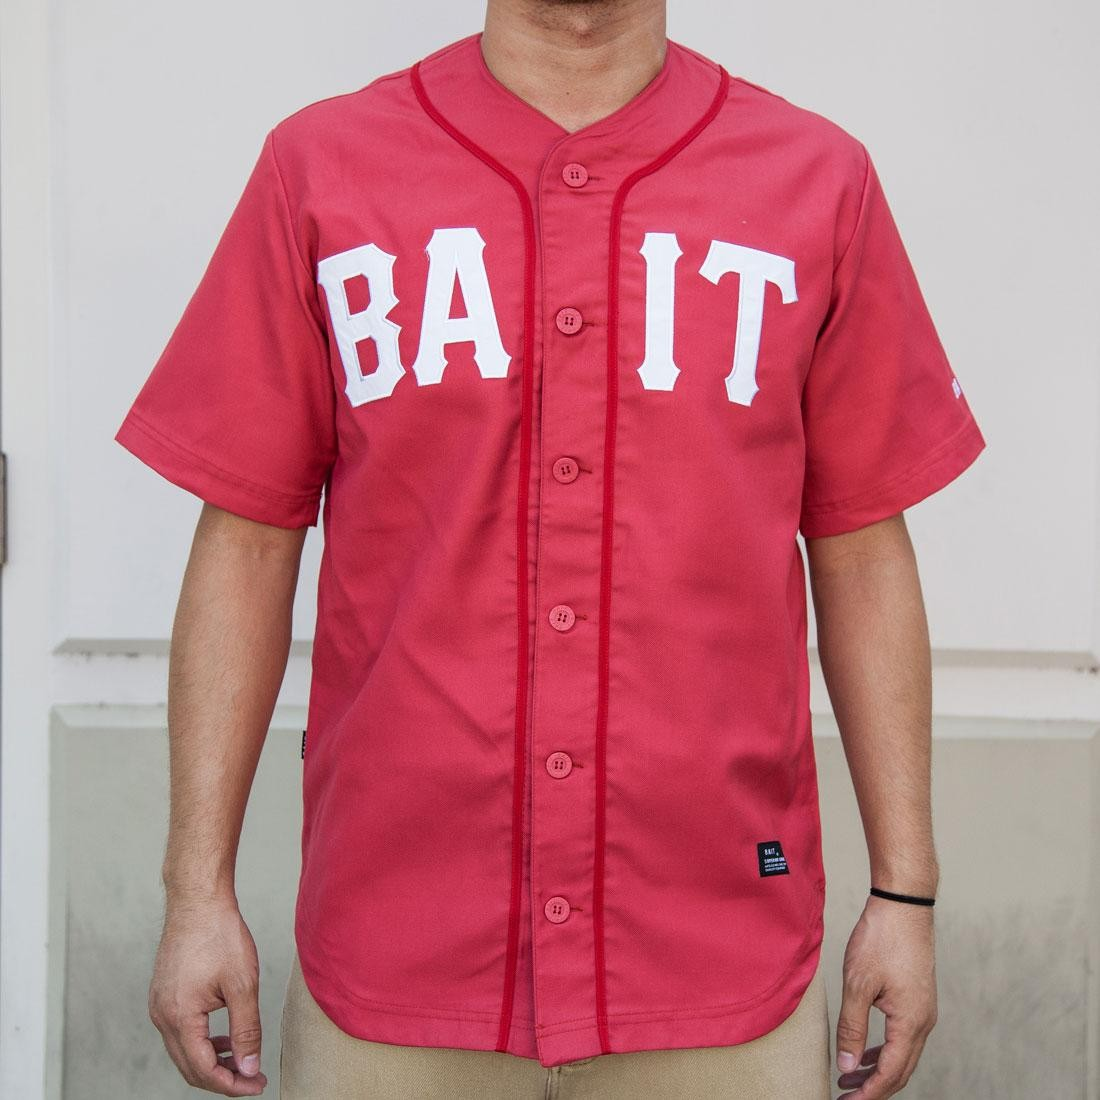 BAIT Men Sluggers Baseball Jersey (red / white)